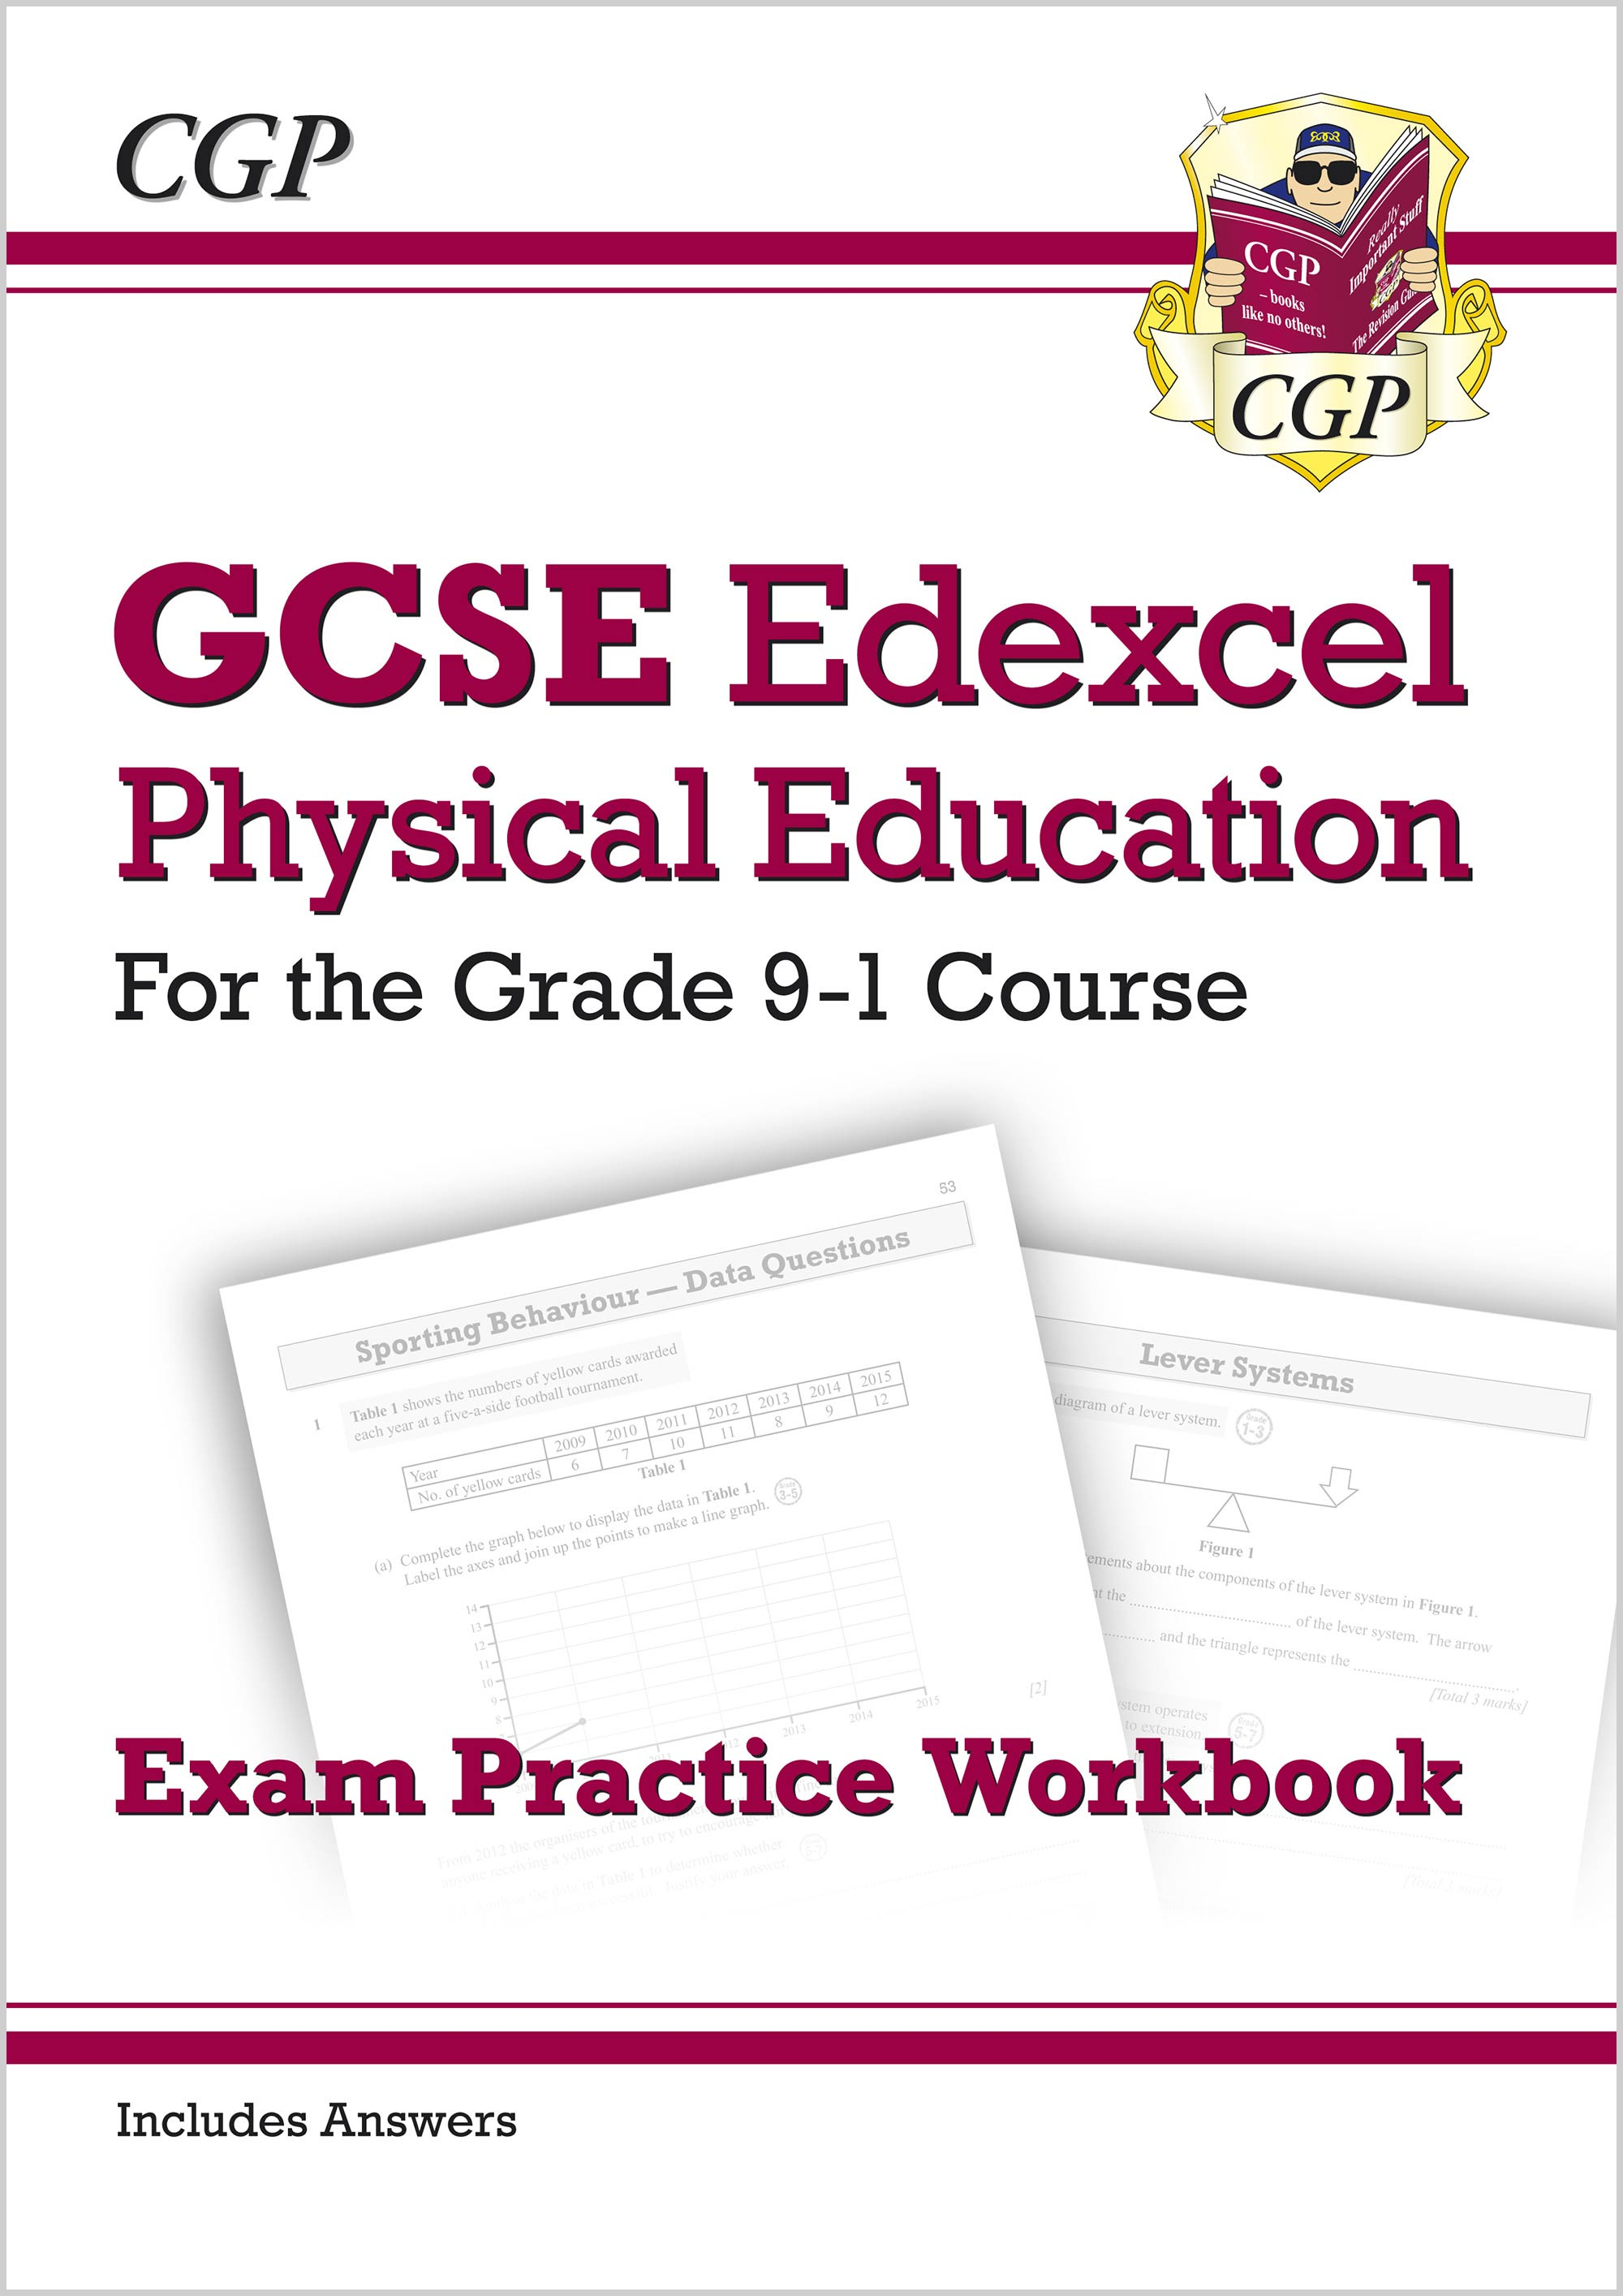 JEQ41 - GCSE Physical Education Edexcel Exam Practice Workbook - for the Grade 9-1 Course (incl Answ